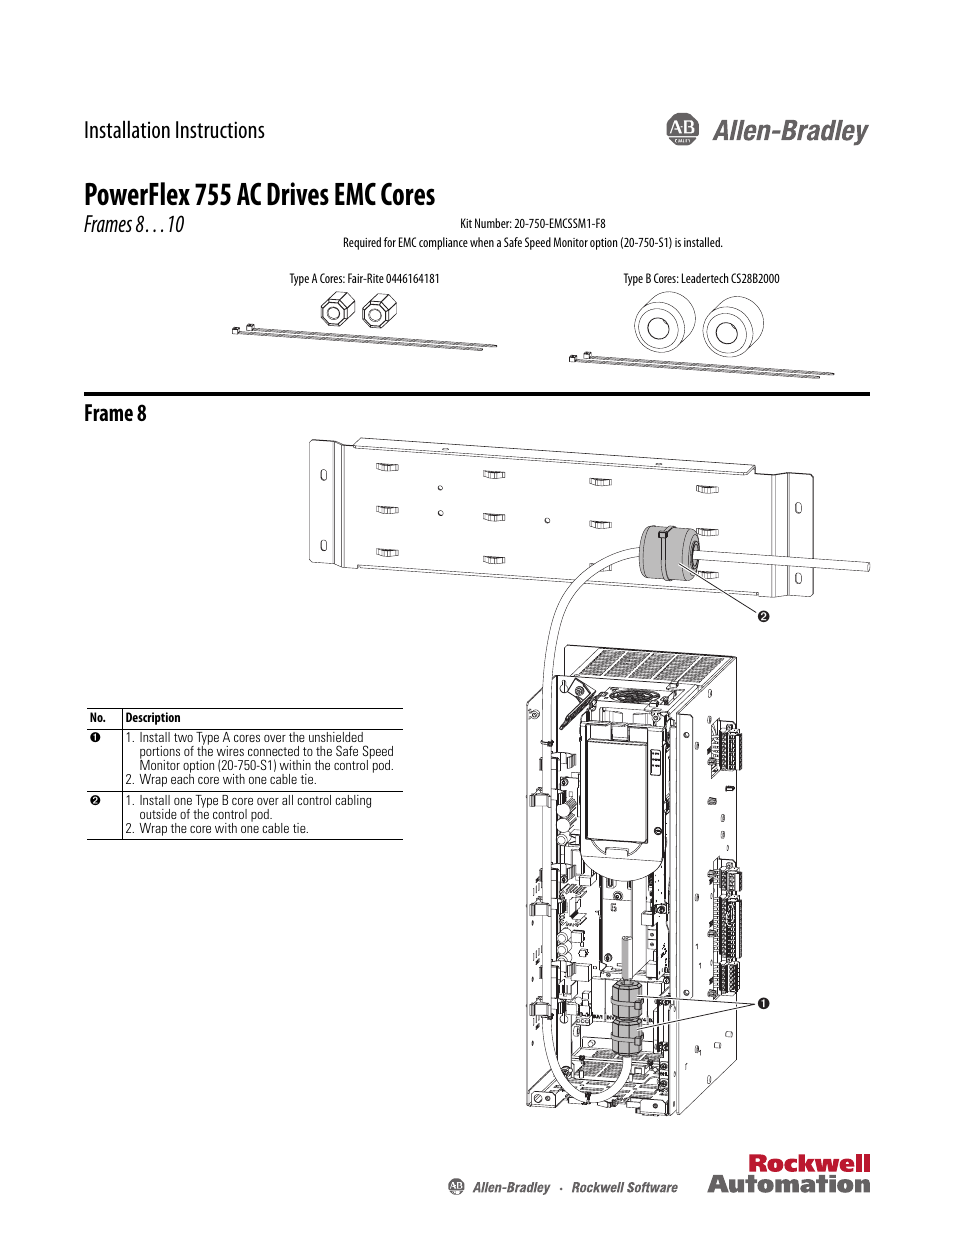 rockwell automation 21g powerflex 755 emc core kit frame 8 and larger page1 rockwell automation 21g powerflex 755 emc core kit, frame 8 and powerflex 755 wiring diagrams at bakdesigns.co